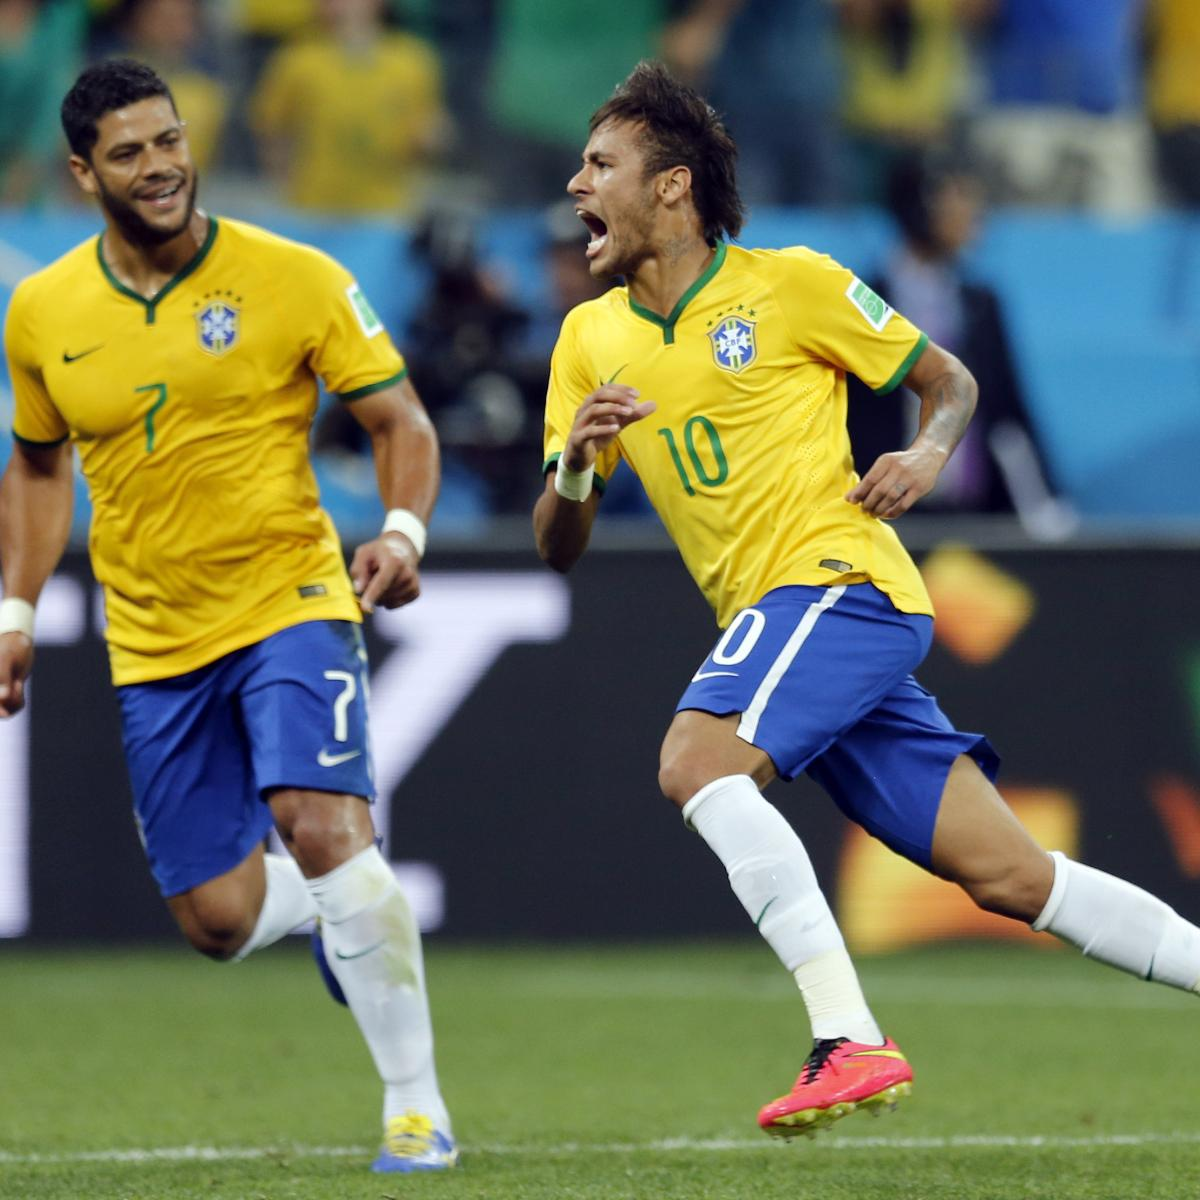 Hulk Brazil Football: Brazil Can Utilise Hulk As No. 9 Vs. Colombia To Offset